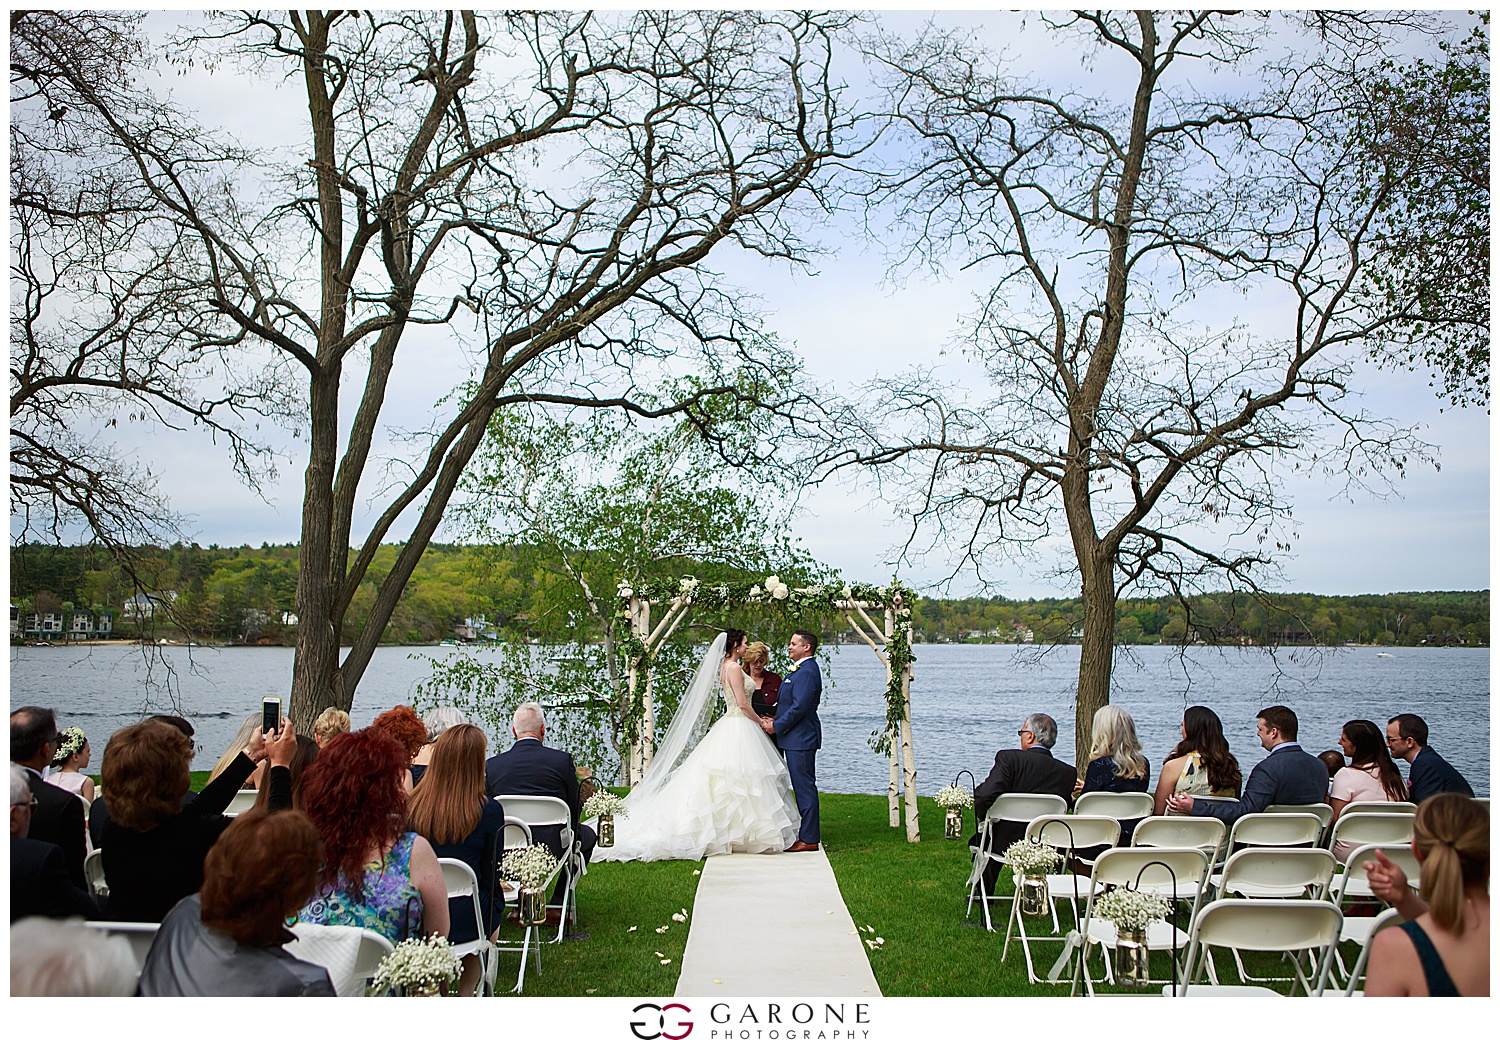 Shauna_Nathan_Carriage_House_Chuch_Landing_Lake_Winnapausakee_Wedding_0015.jpg